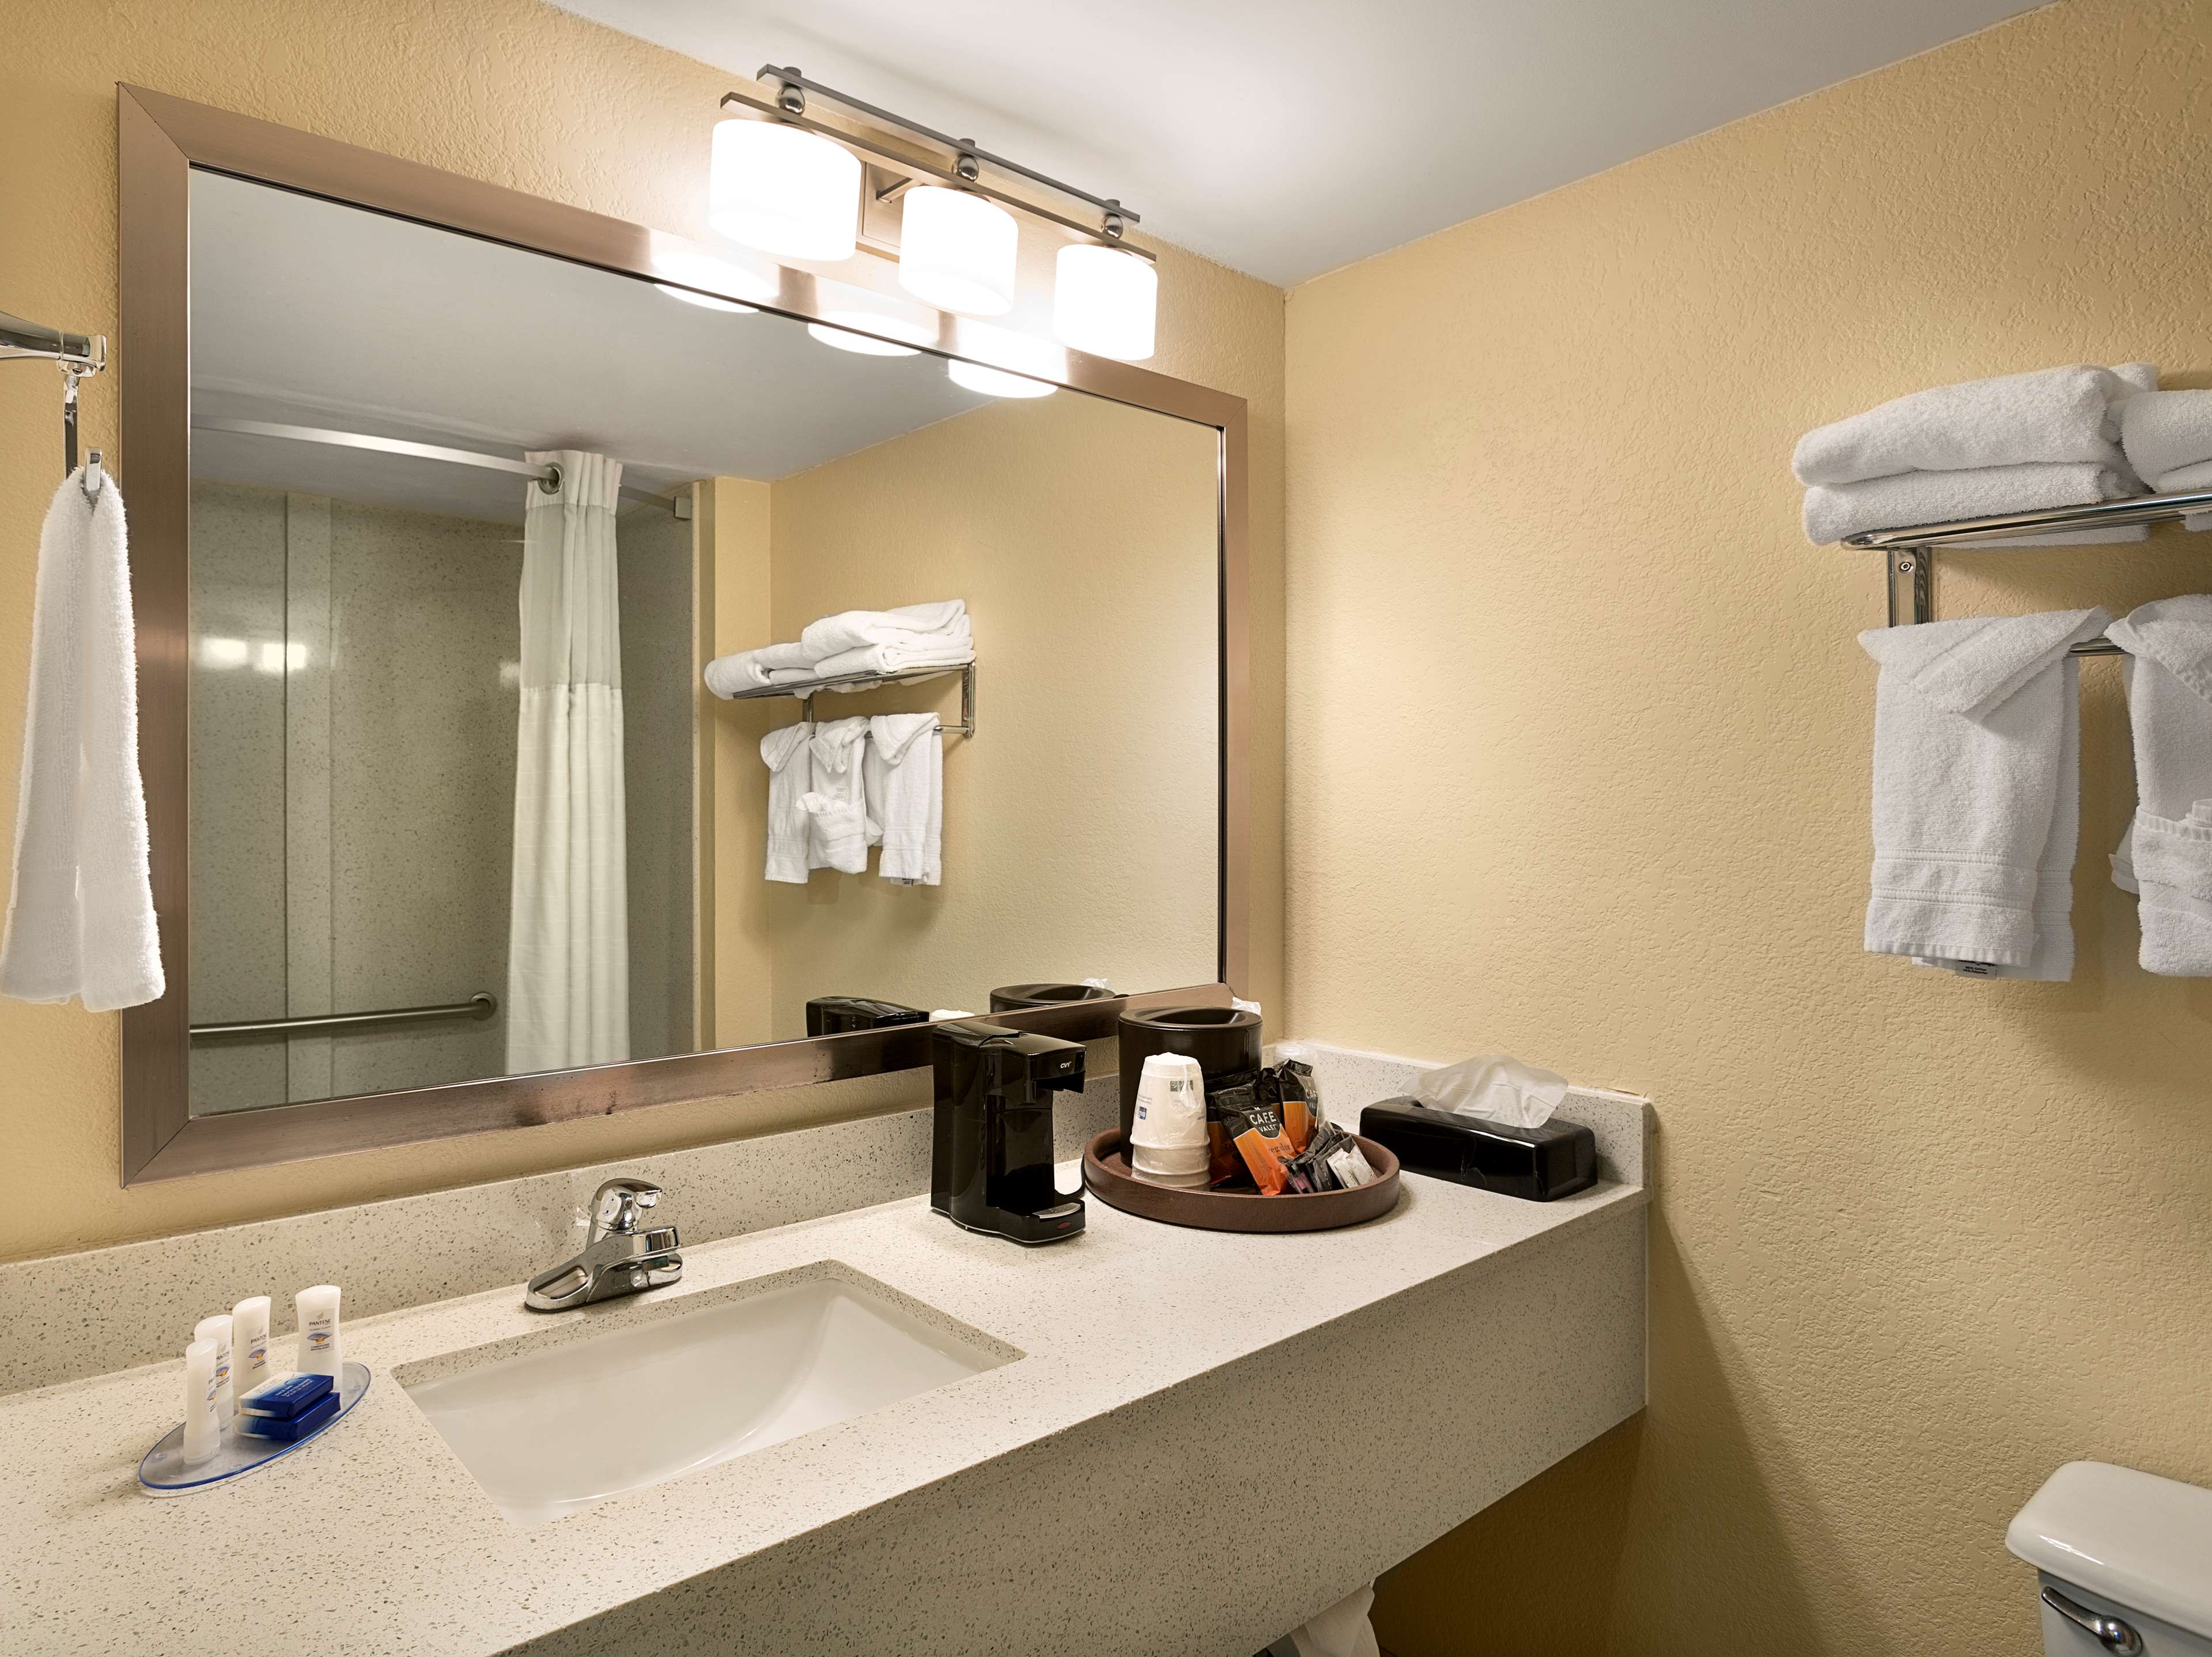 Best Western Plus Hotel & Suites Airport South image 22